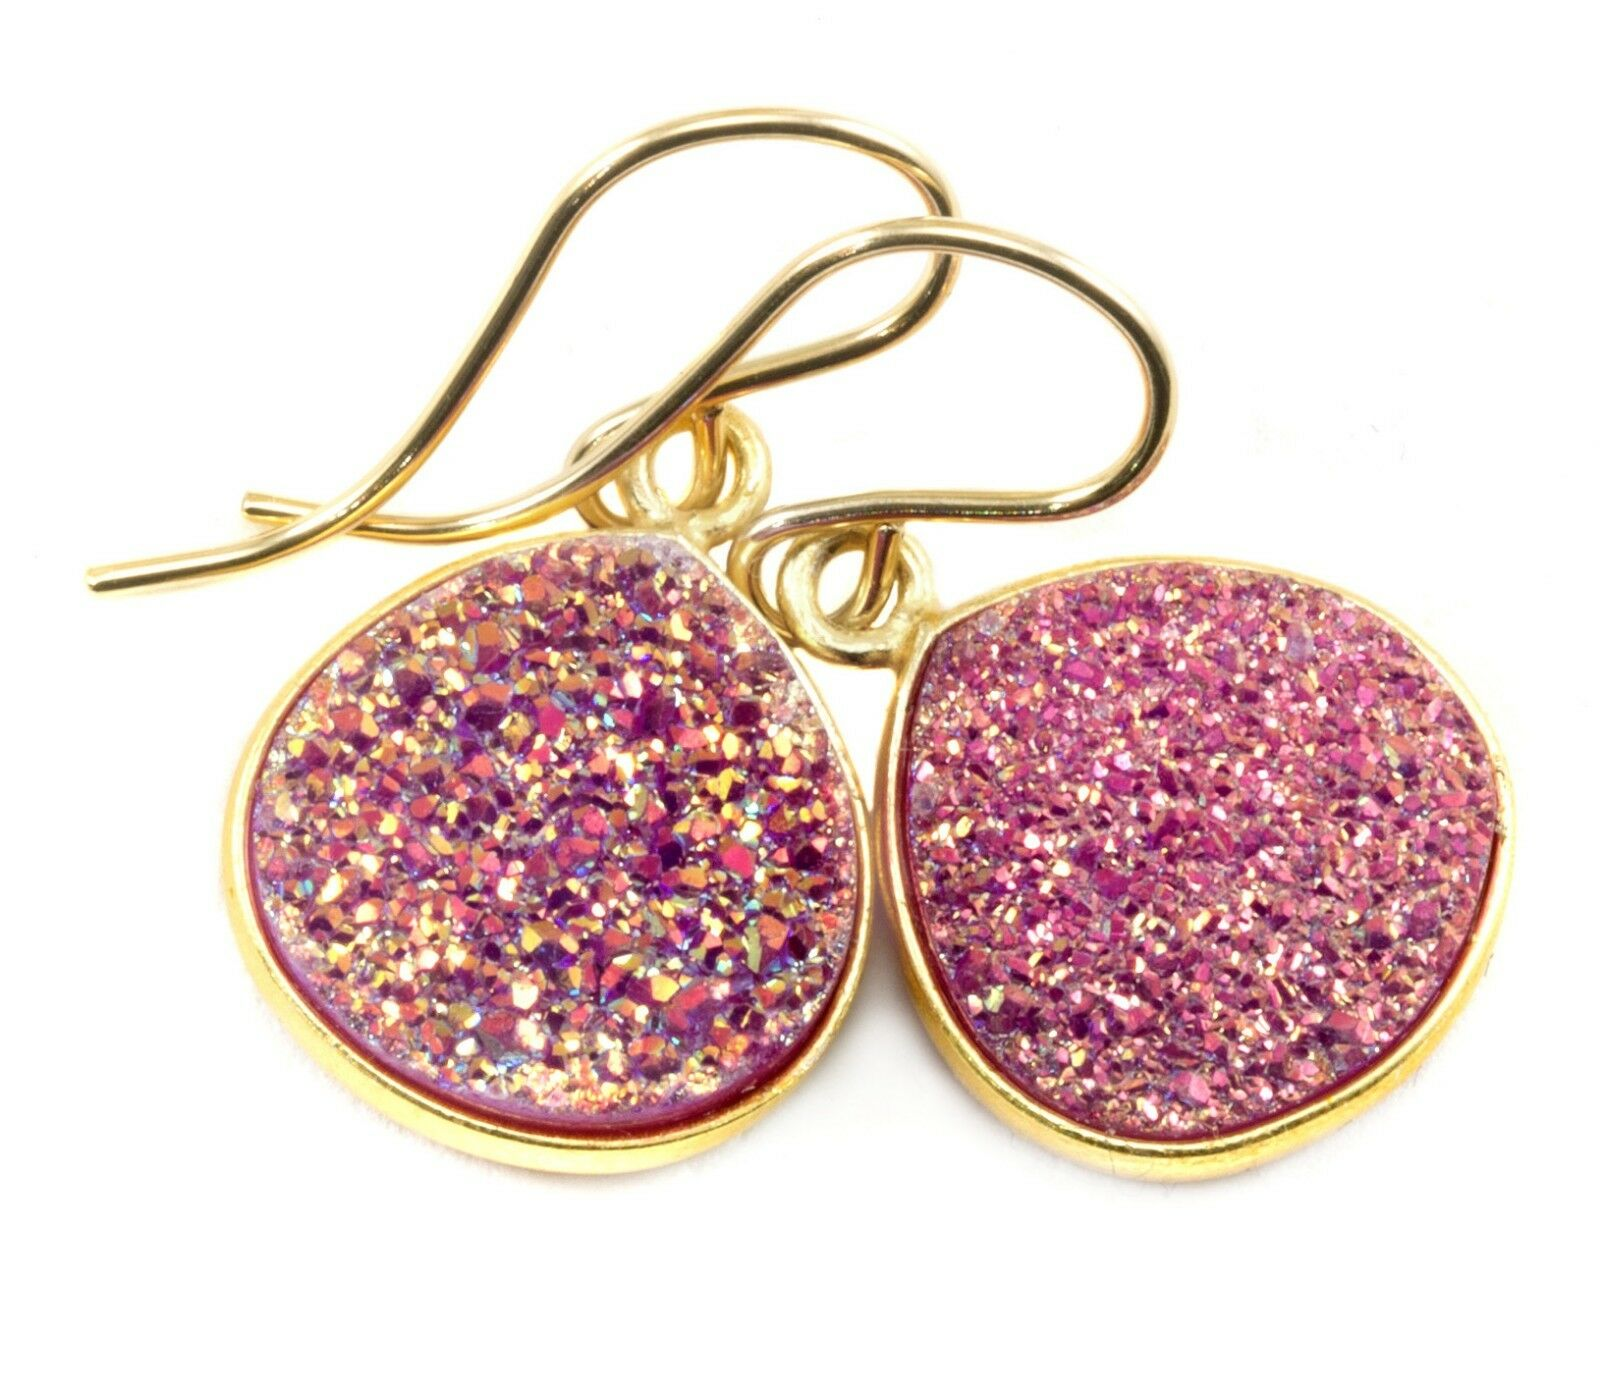 14k gold Druzy Earrings Pink Hearts Bezel Set Drusy Sterling Dangles Drops Small